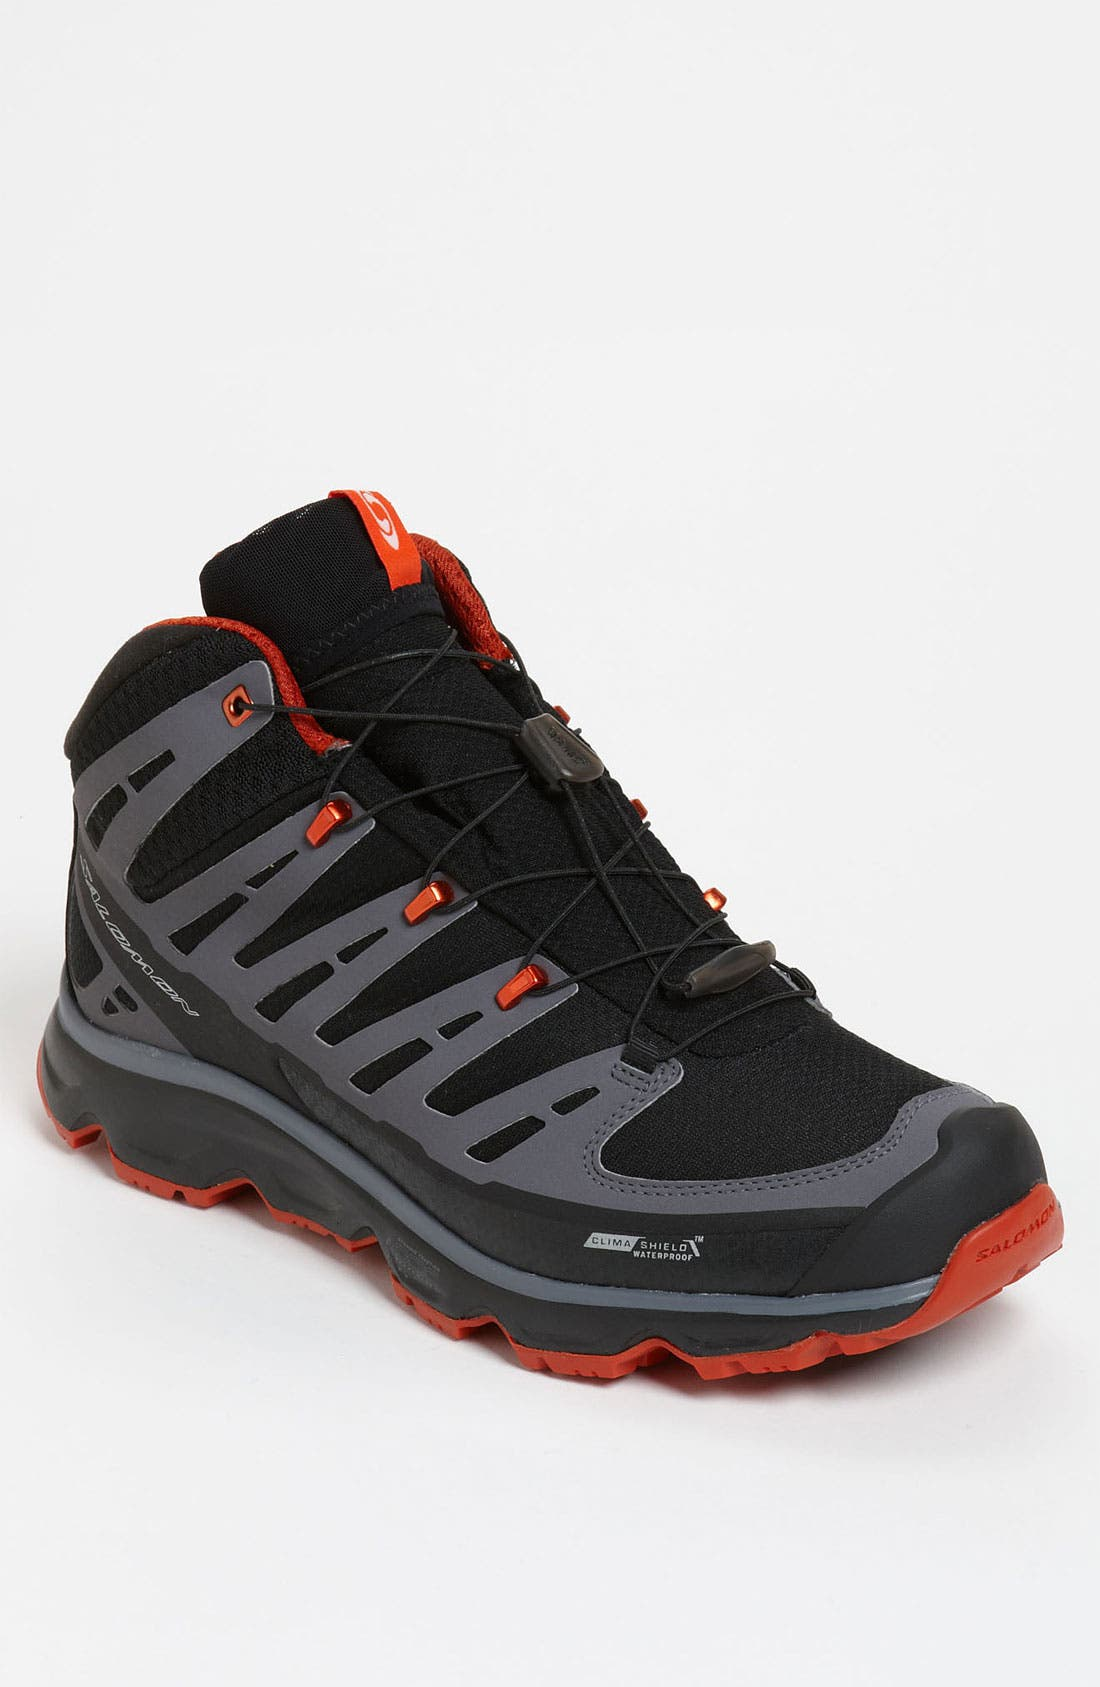 Alternate Image 1 Selected - Salomon 'Synapse Mid CS' Hiking Shoe (Men) (Online Only)